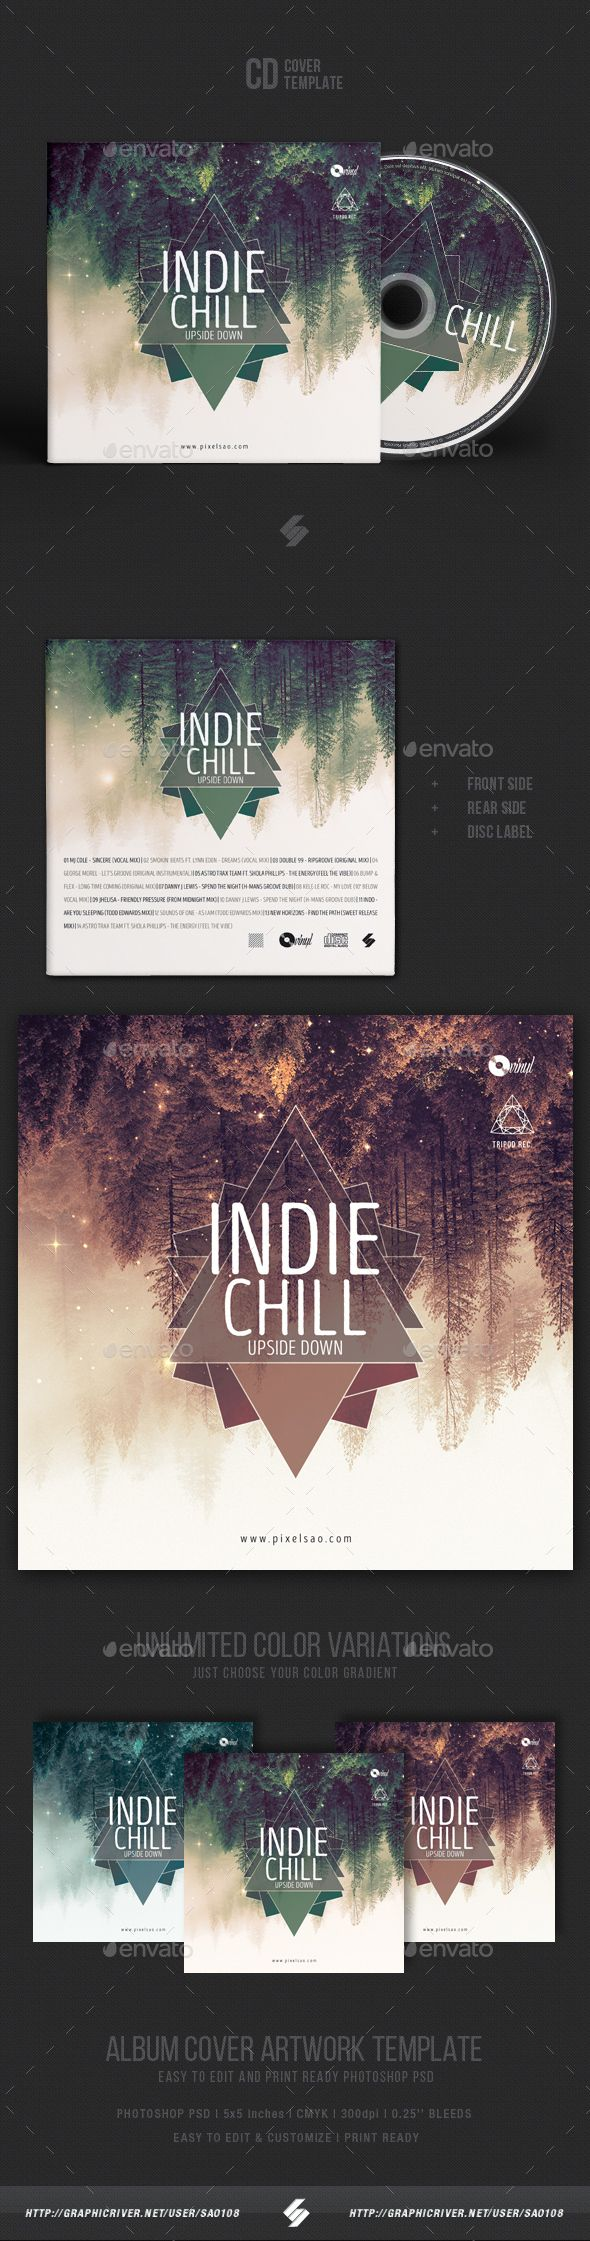 Cd box template download free vector art stock graphics amp images - Indie Chill Music Cd Cover Artwork Template